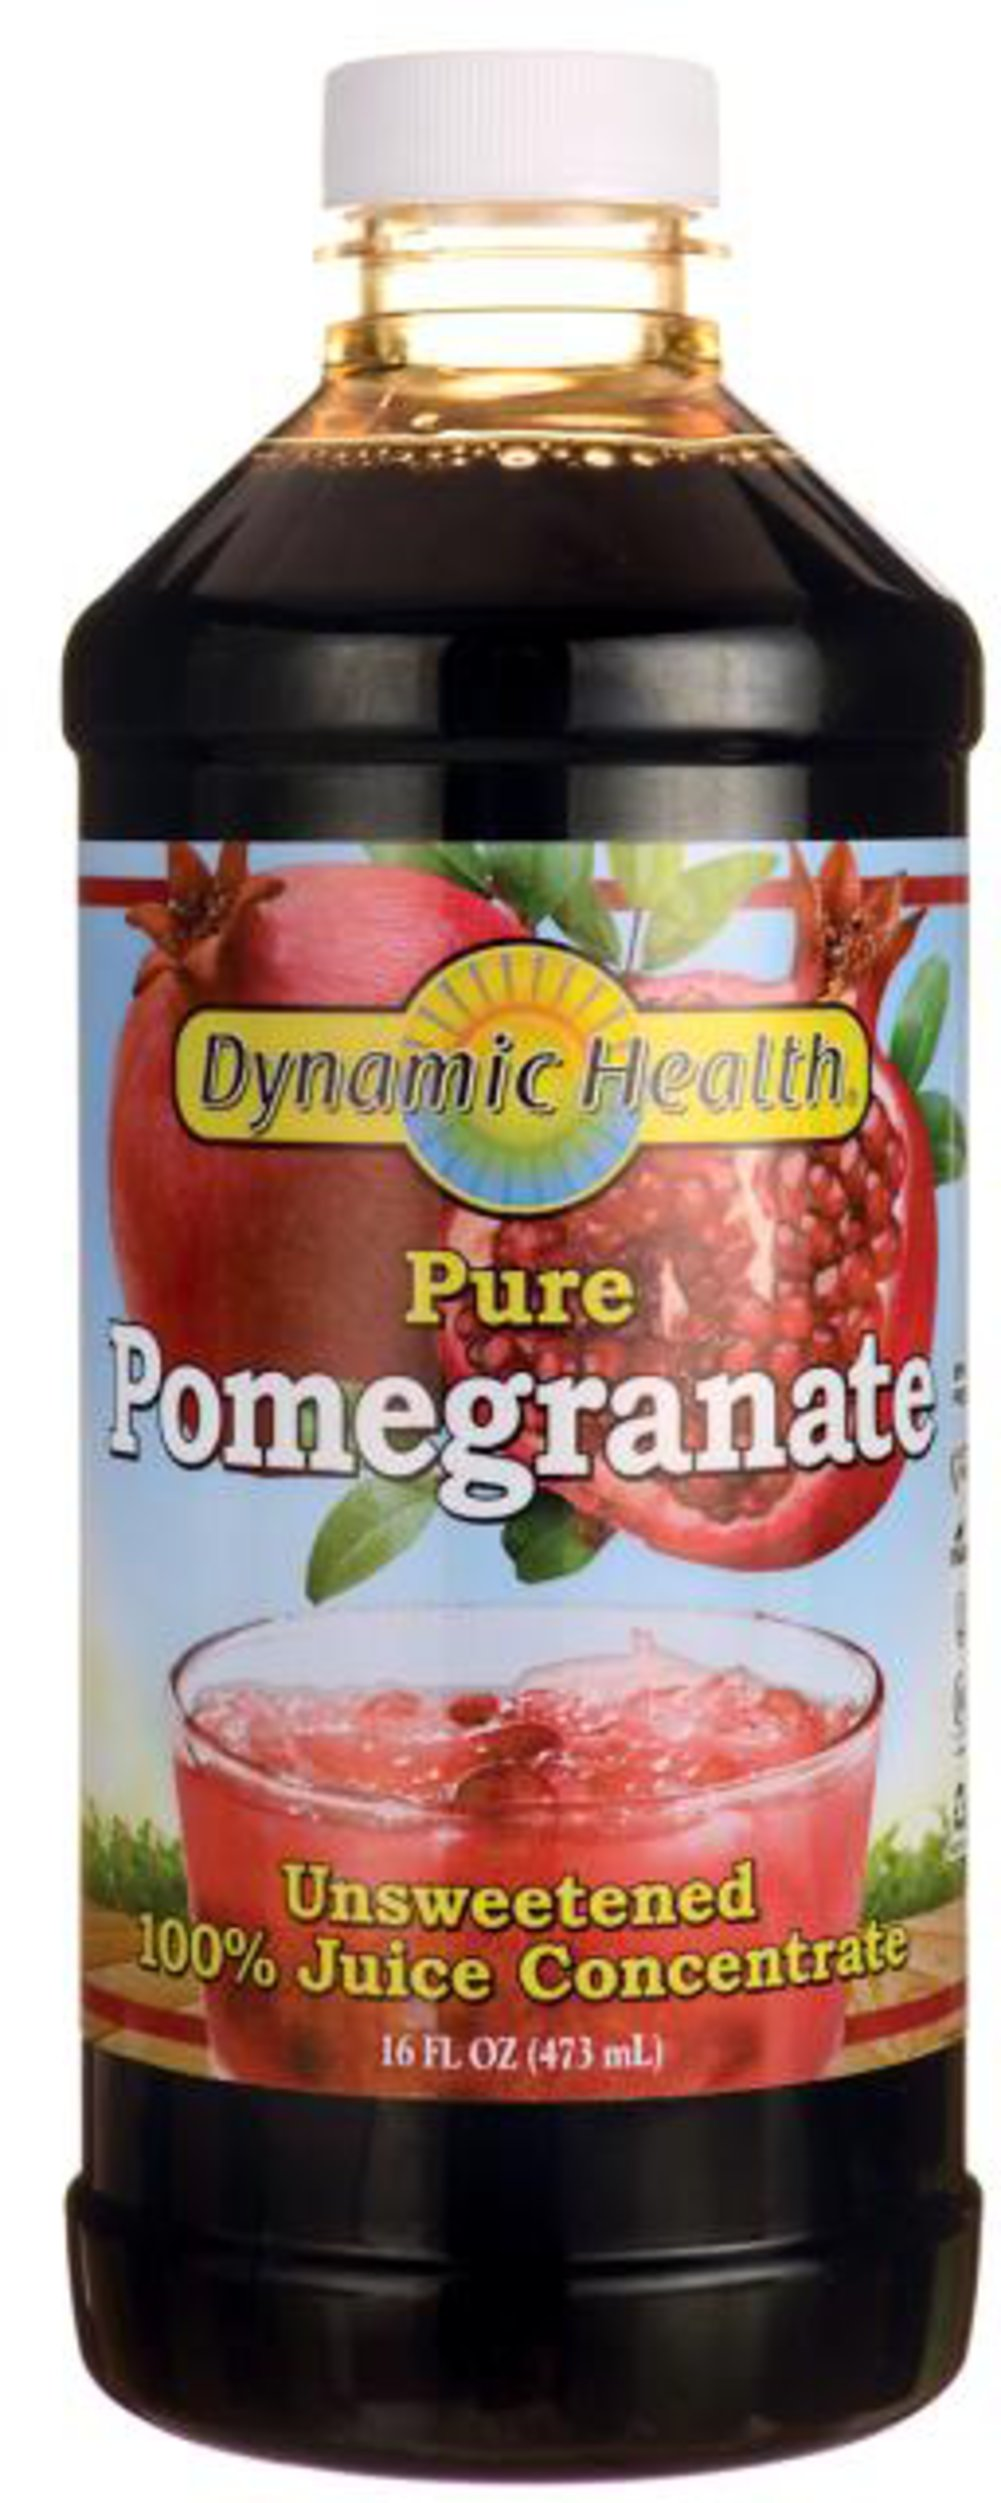 Pomegranate Juice Concentrate <p>Convenient, delicious way to obtain the beneficial compounds in pomegranate fruit</p><p>Manufactured by Dynamic Health Laboratories, Inc.</p> 16 oz Liquid  $11.99